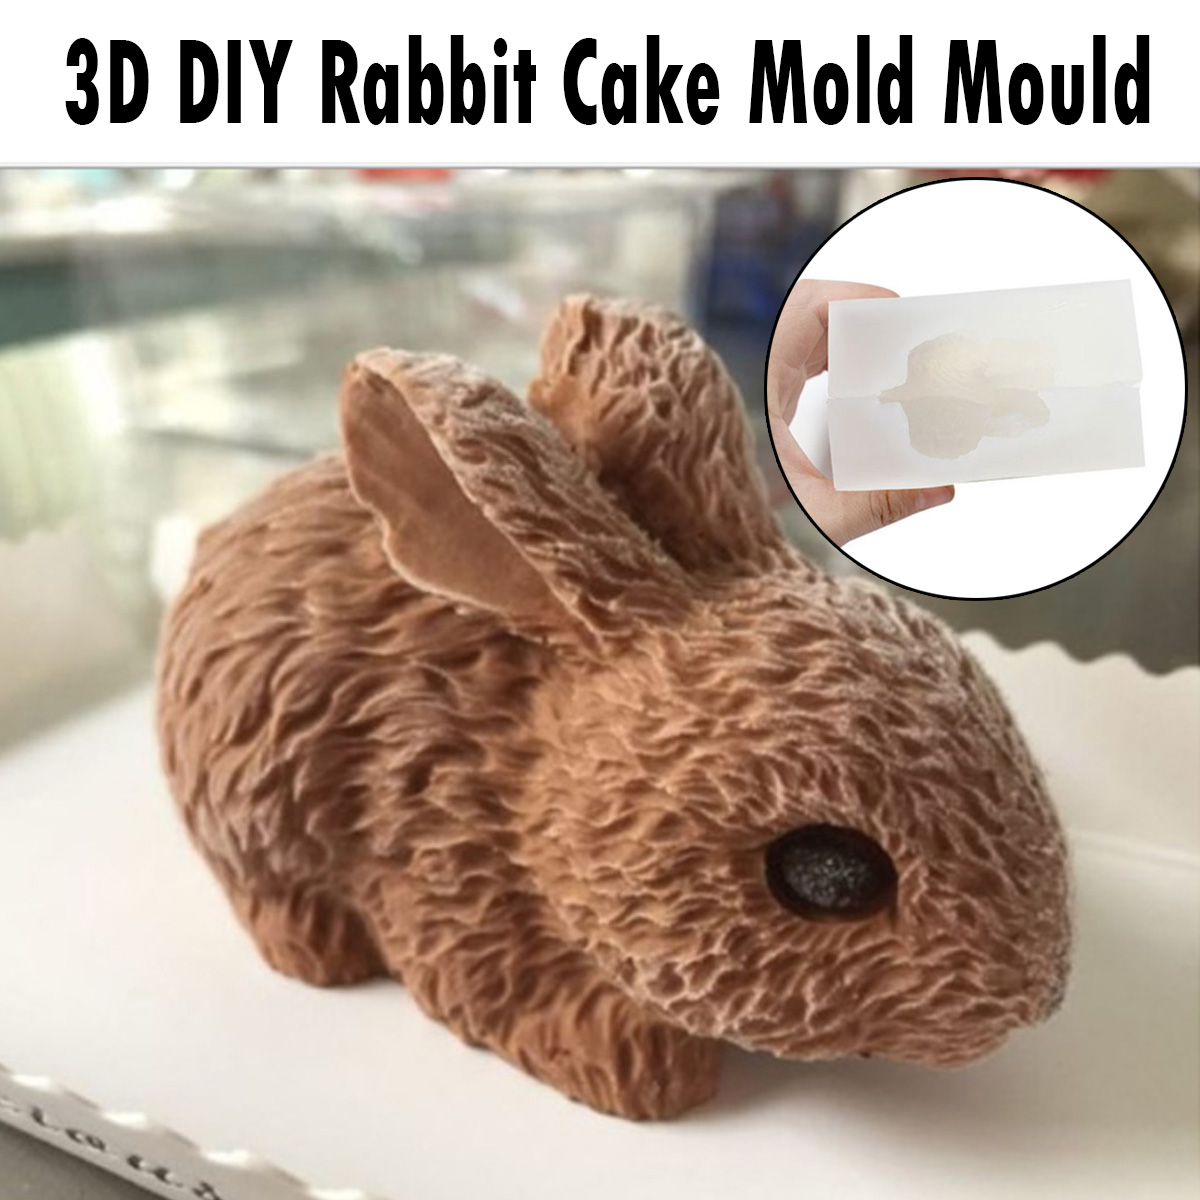 3D Animal Cat Modeling Silicone Cake Mold Handmade Chocolate Gumpaste Fondant Soap Mould,Baking Tool Cake Decorating Mould,DIY Bakeware Pan Form,Aromatherapy Plaster Art Resin Clay Molds Making